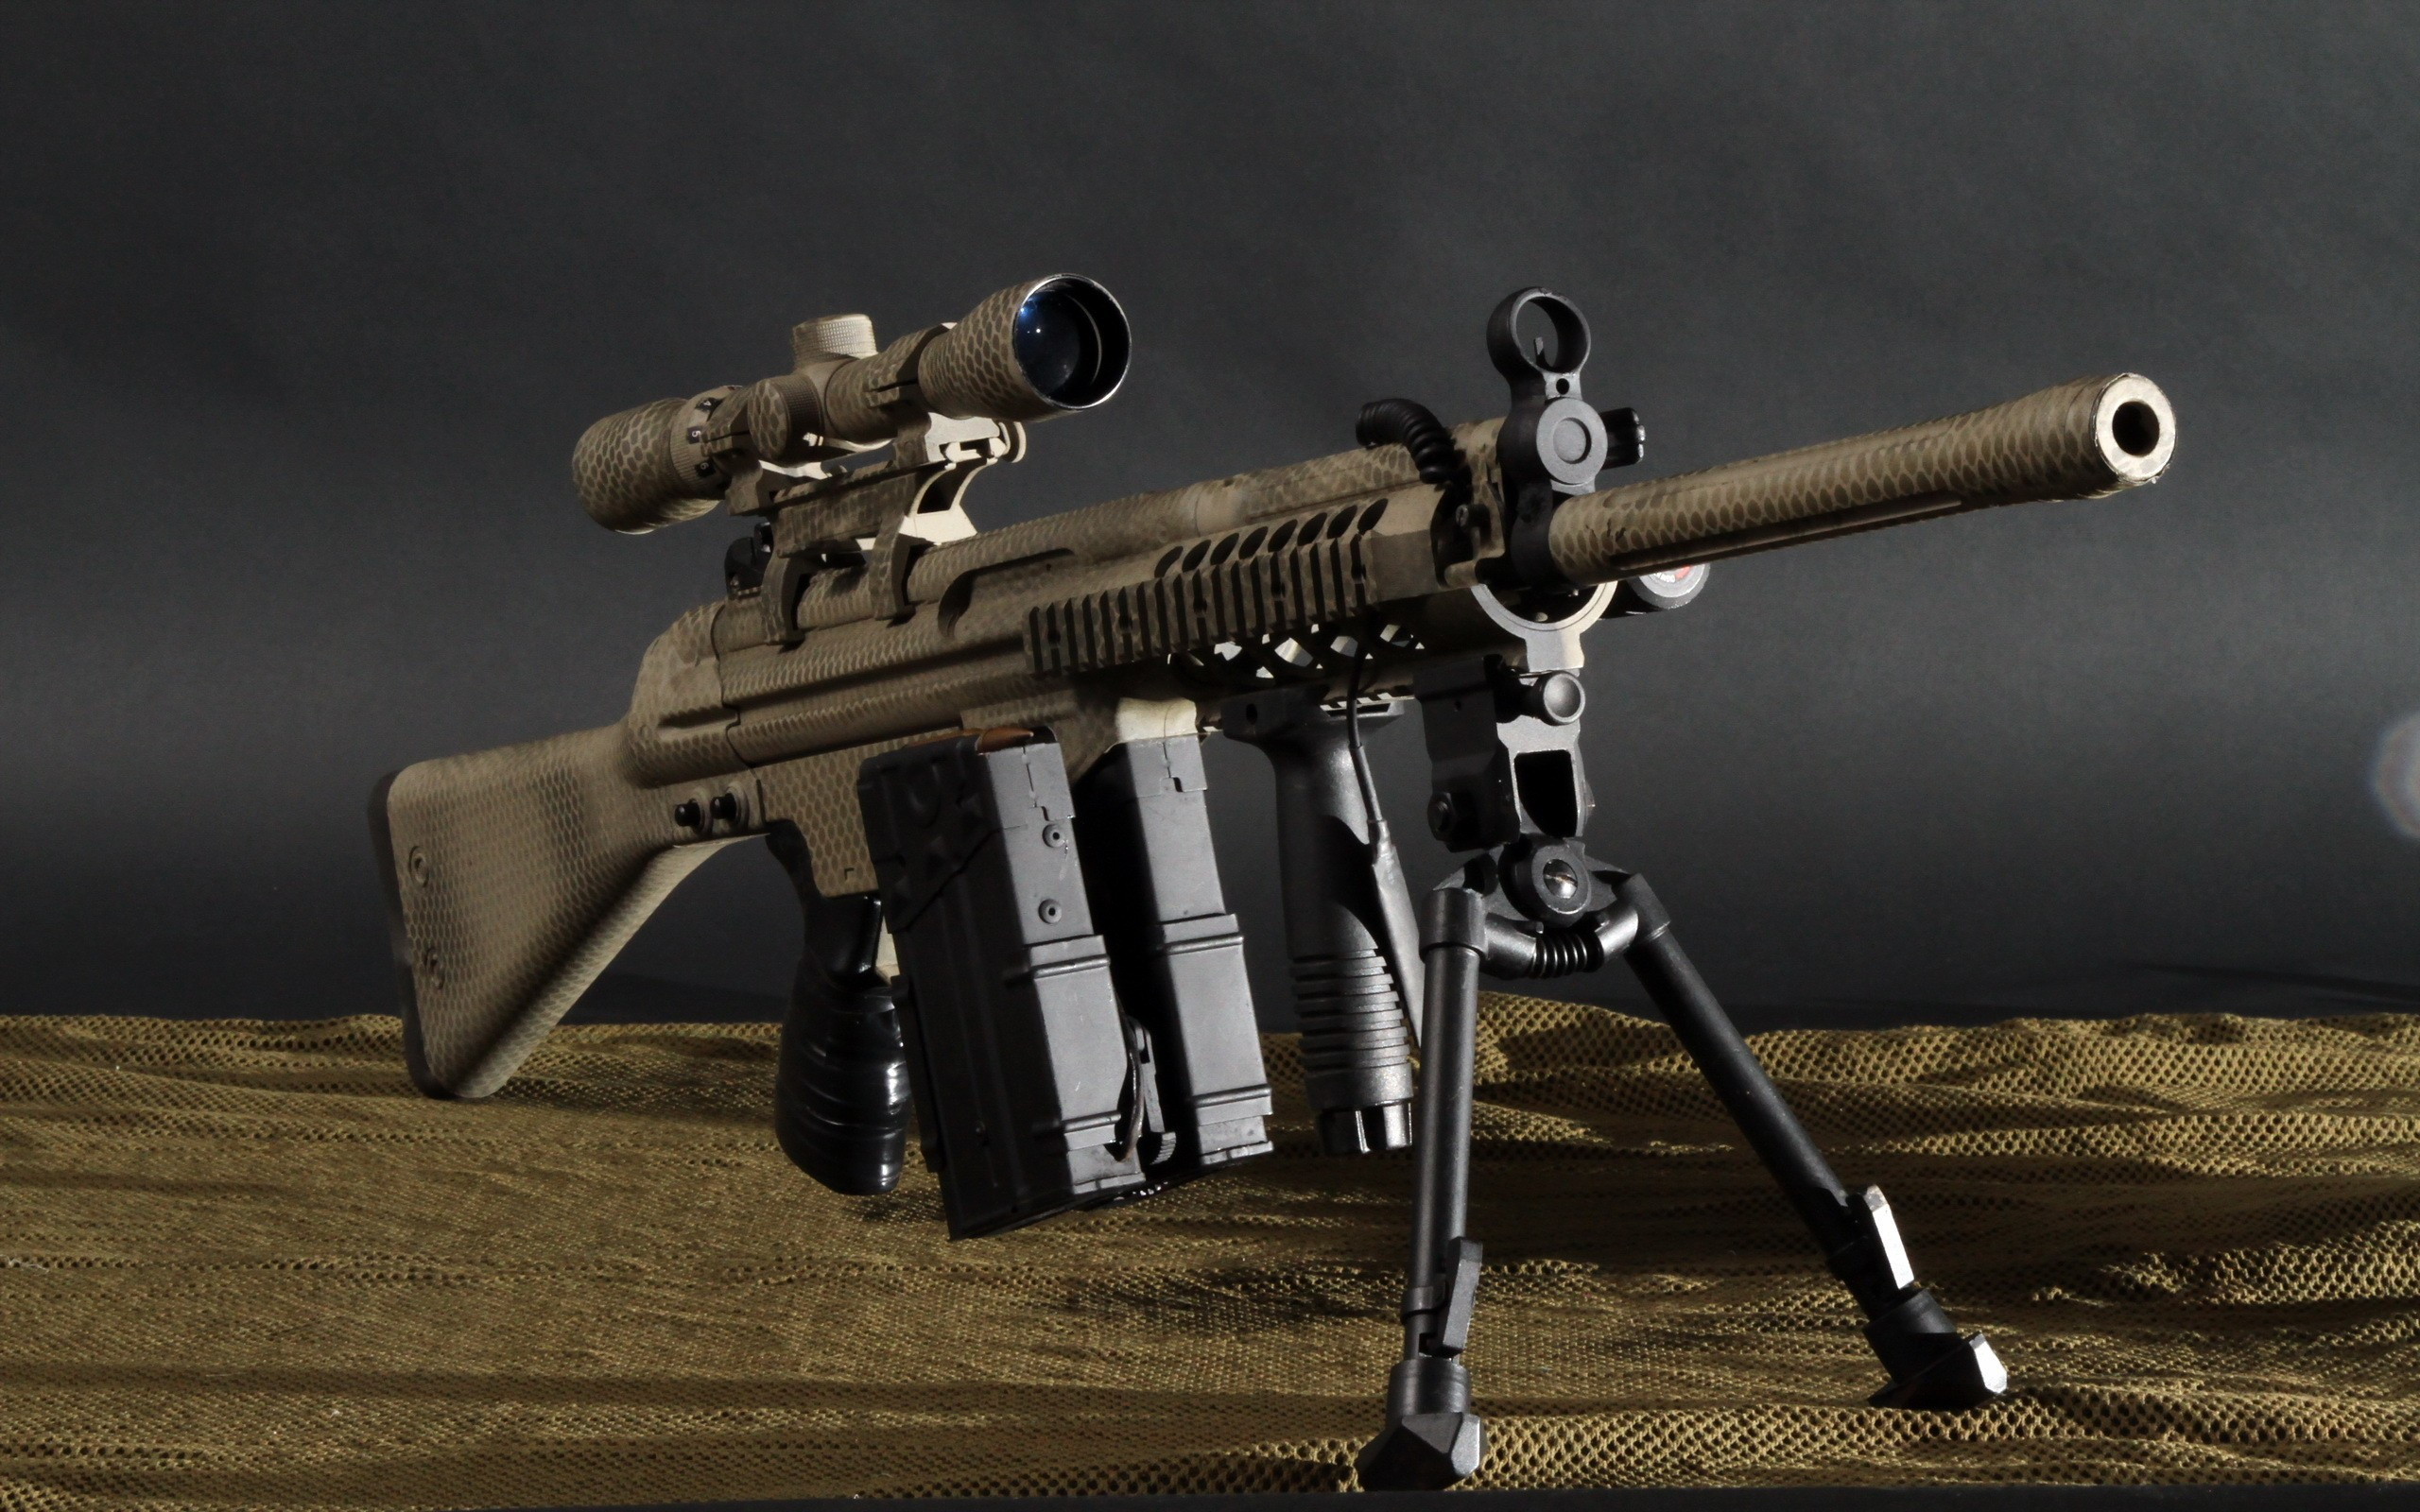 Sniper Rifles HD Wallpapers are to download from AMB Wallpapers 2560x1600